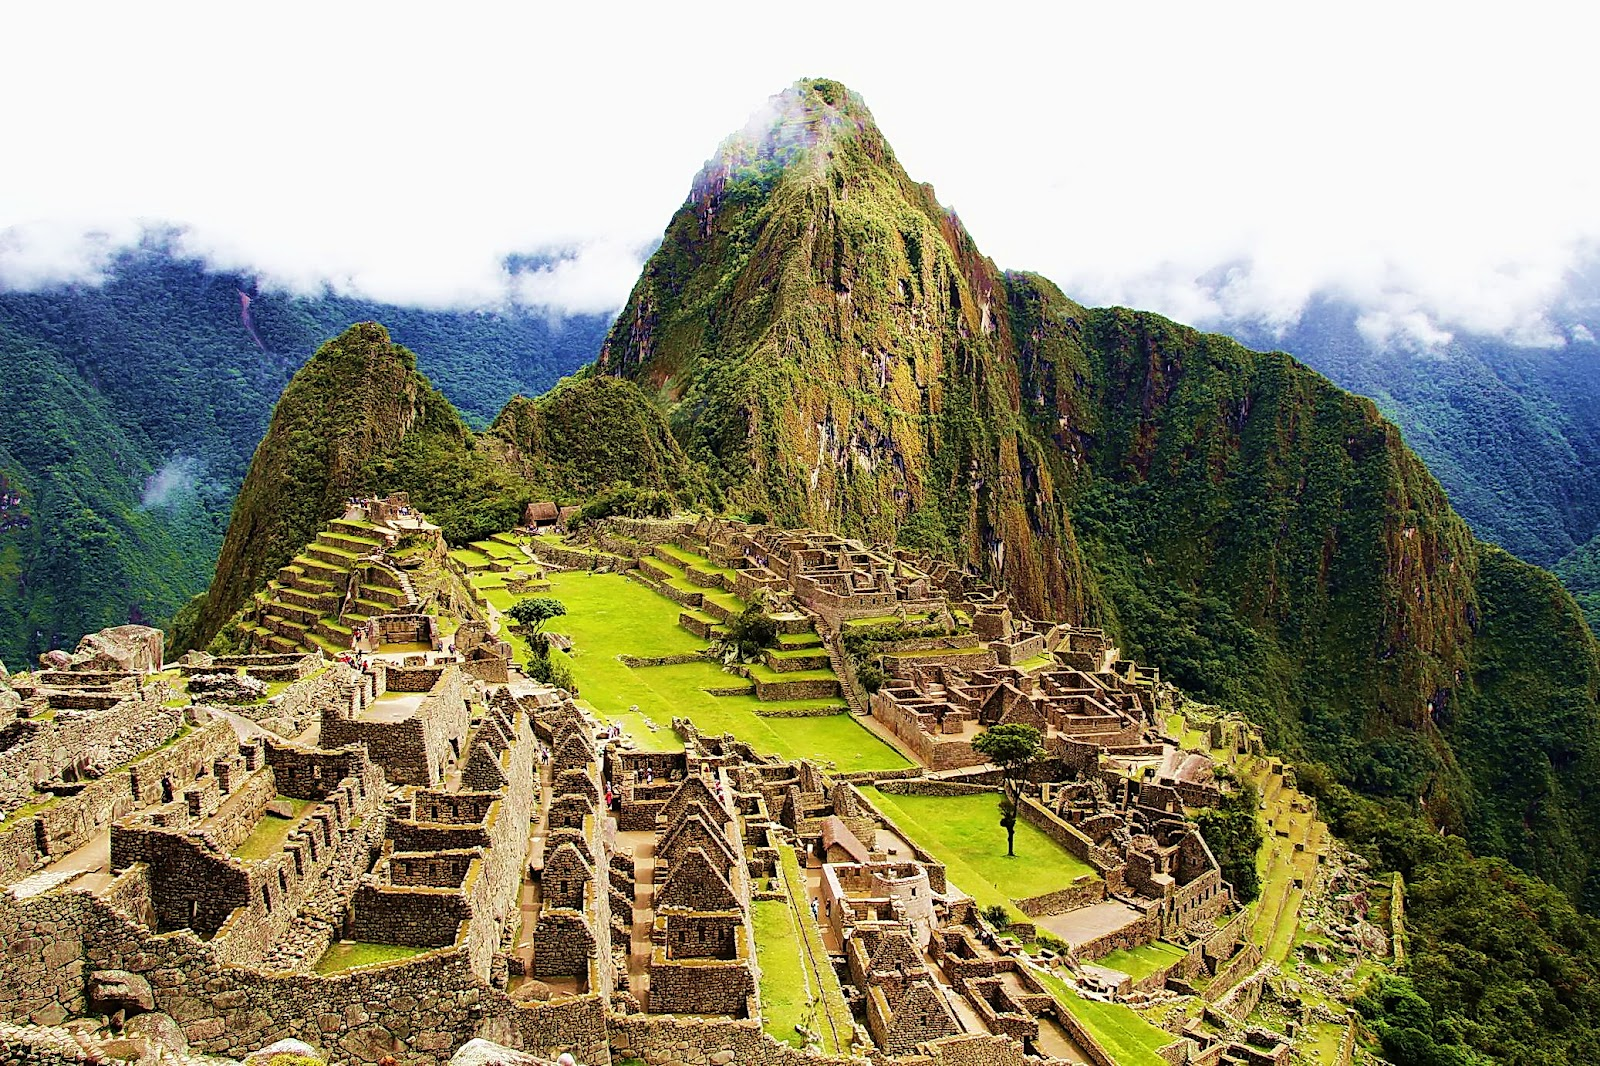 The Ancient Incan City of Machu Picchu - ThingLink